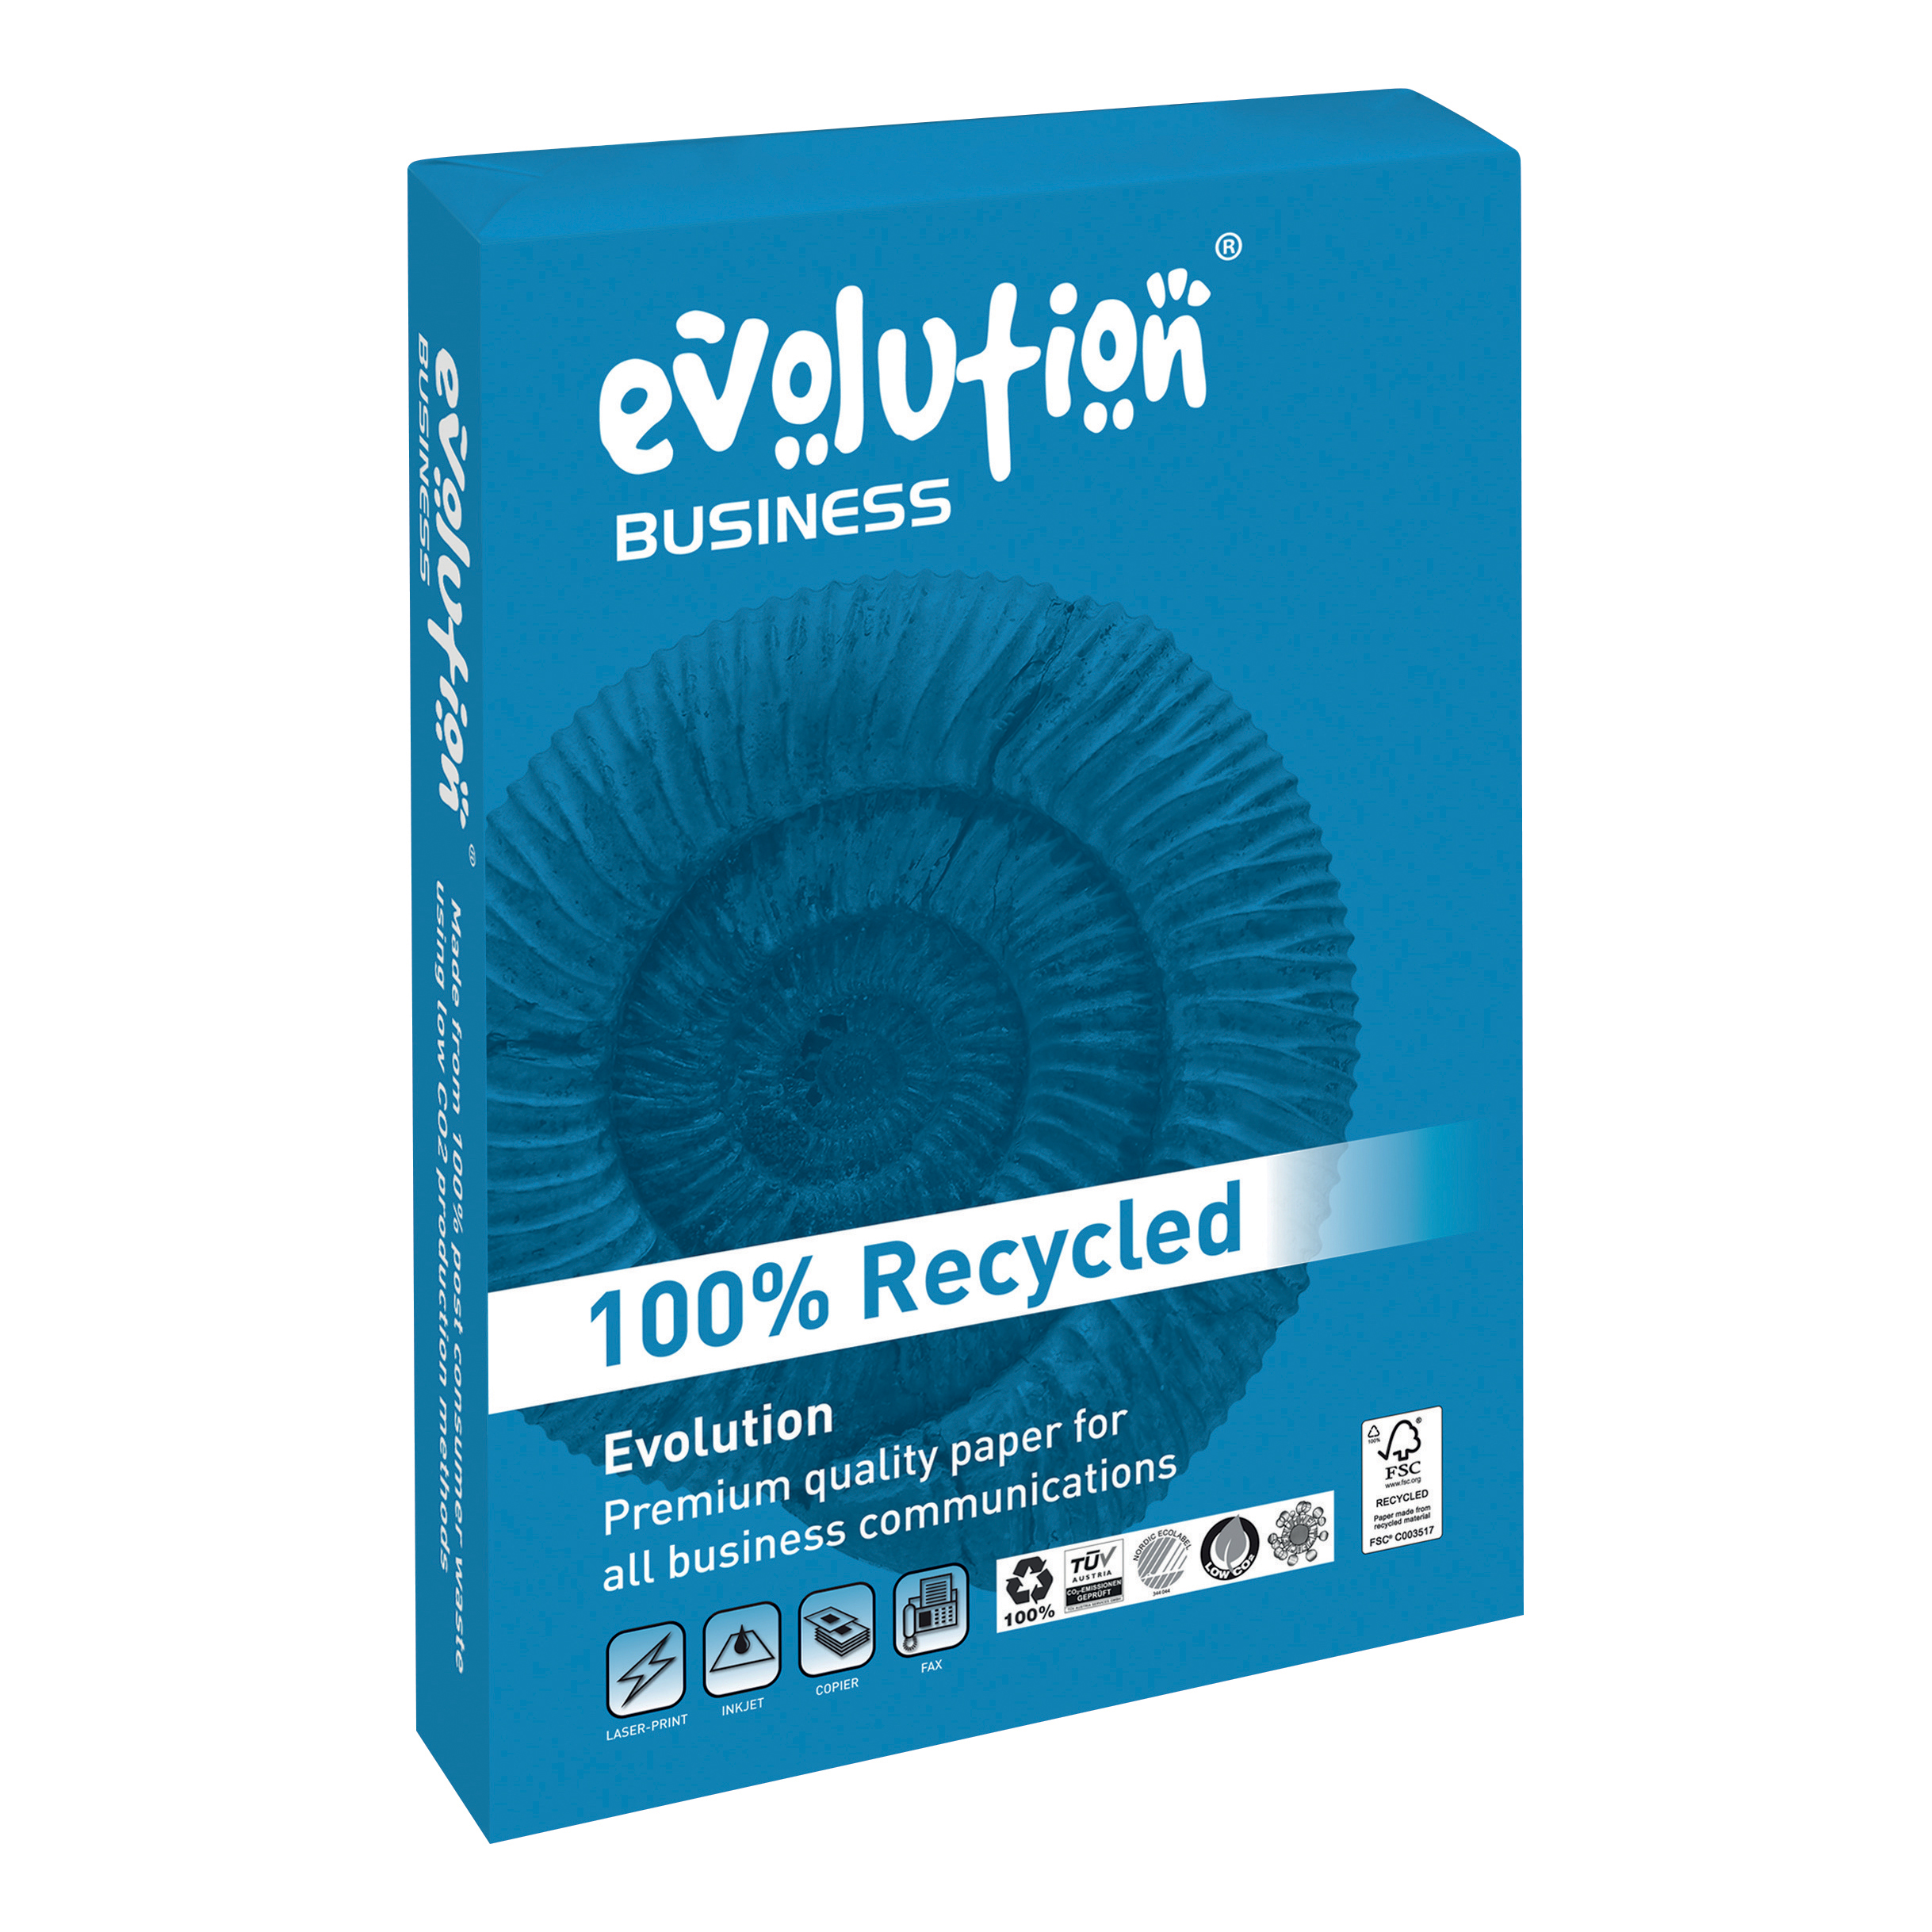 Evolution Business Recycled Paper 80gsm FSC A3 White Ref EVBU4280 [500 Sheets]